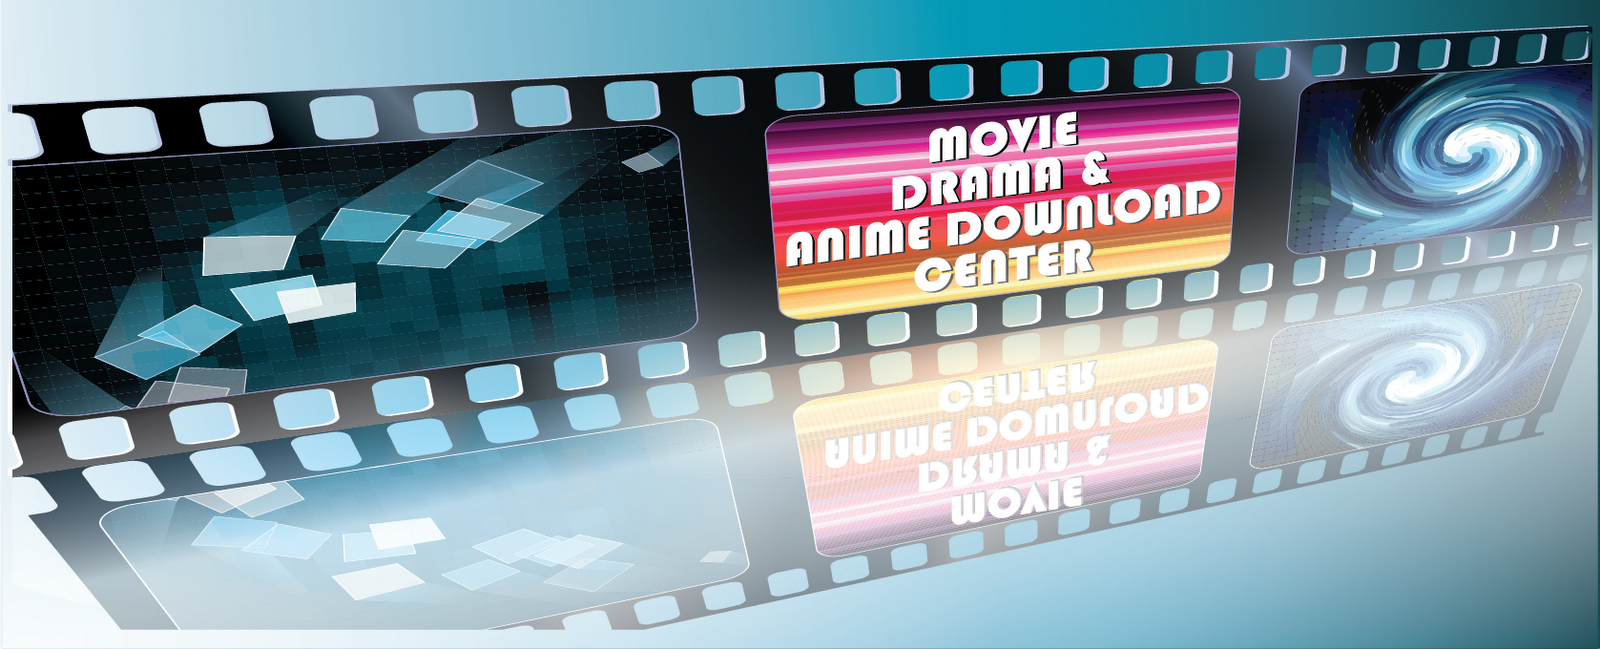 Movie,Drama & Anime Download Center